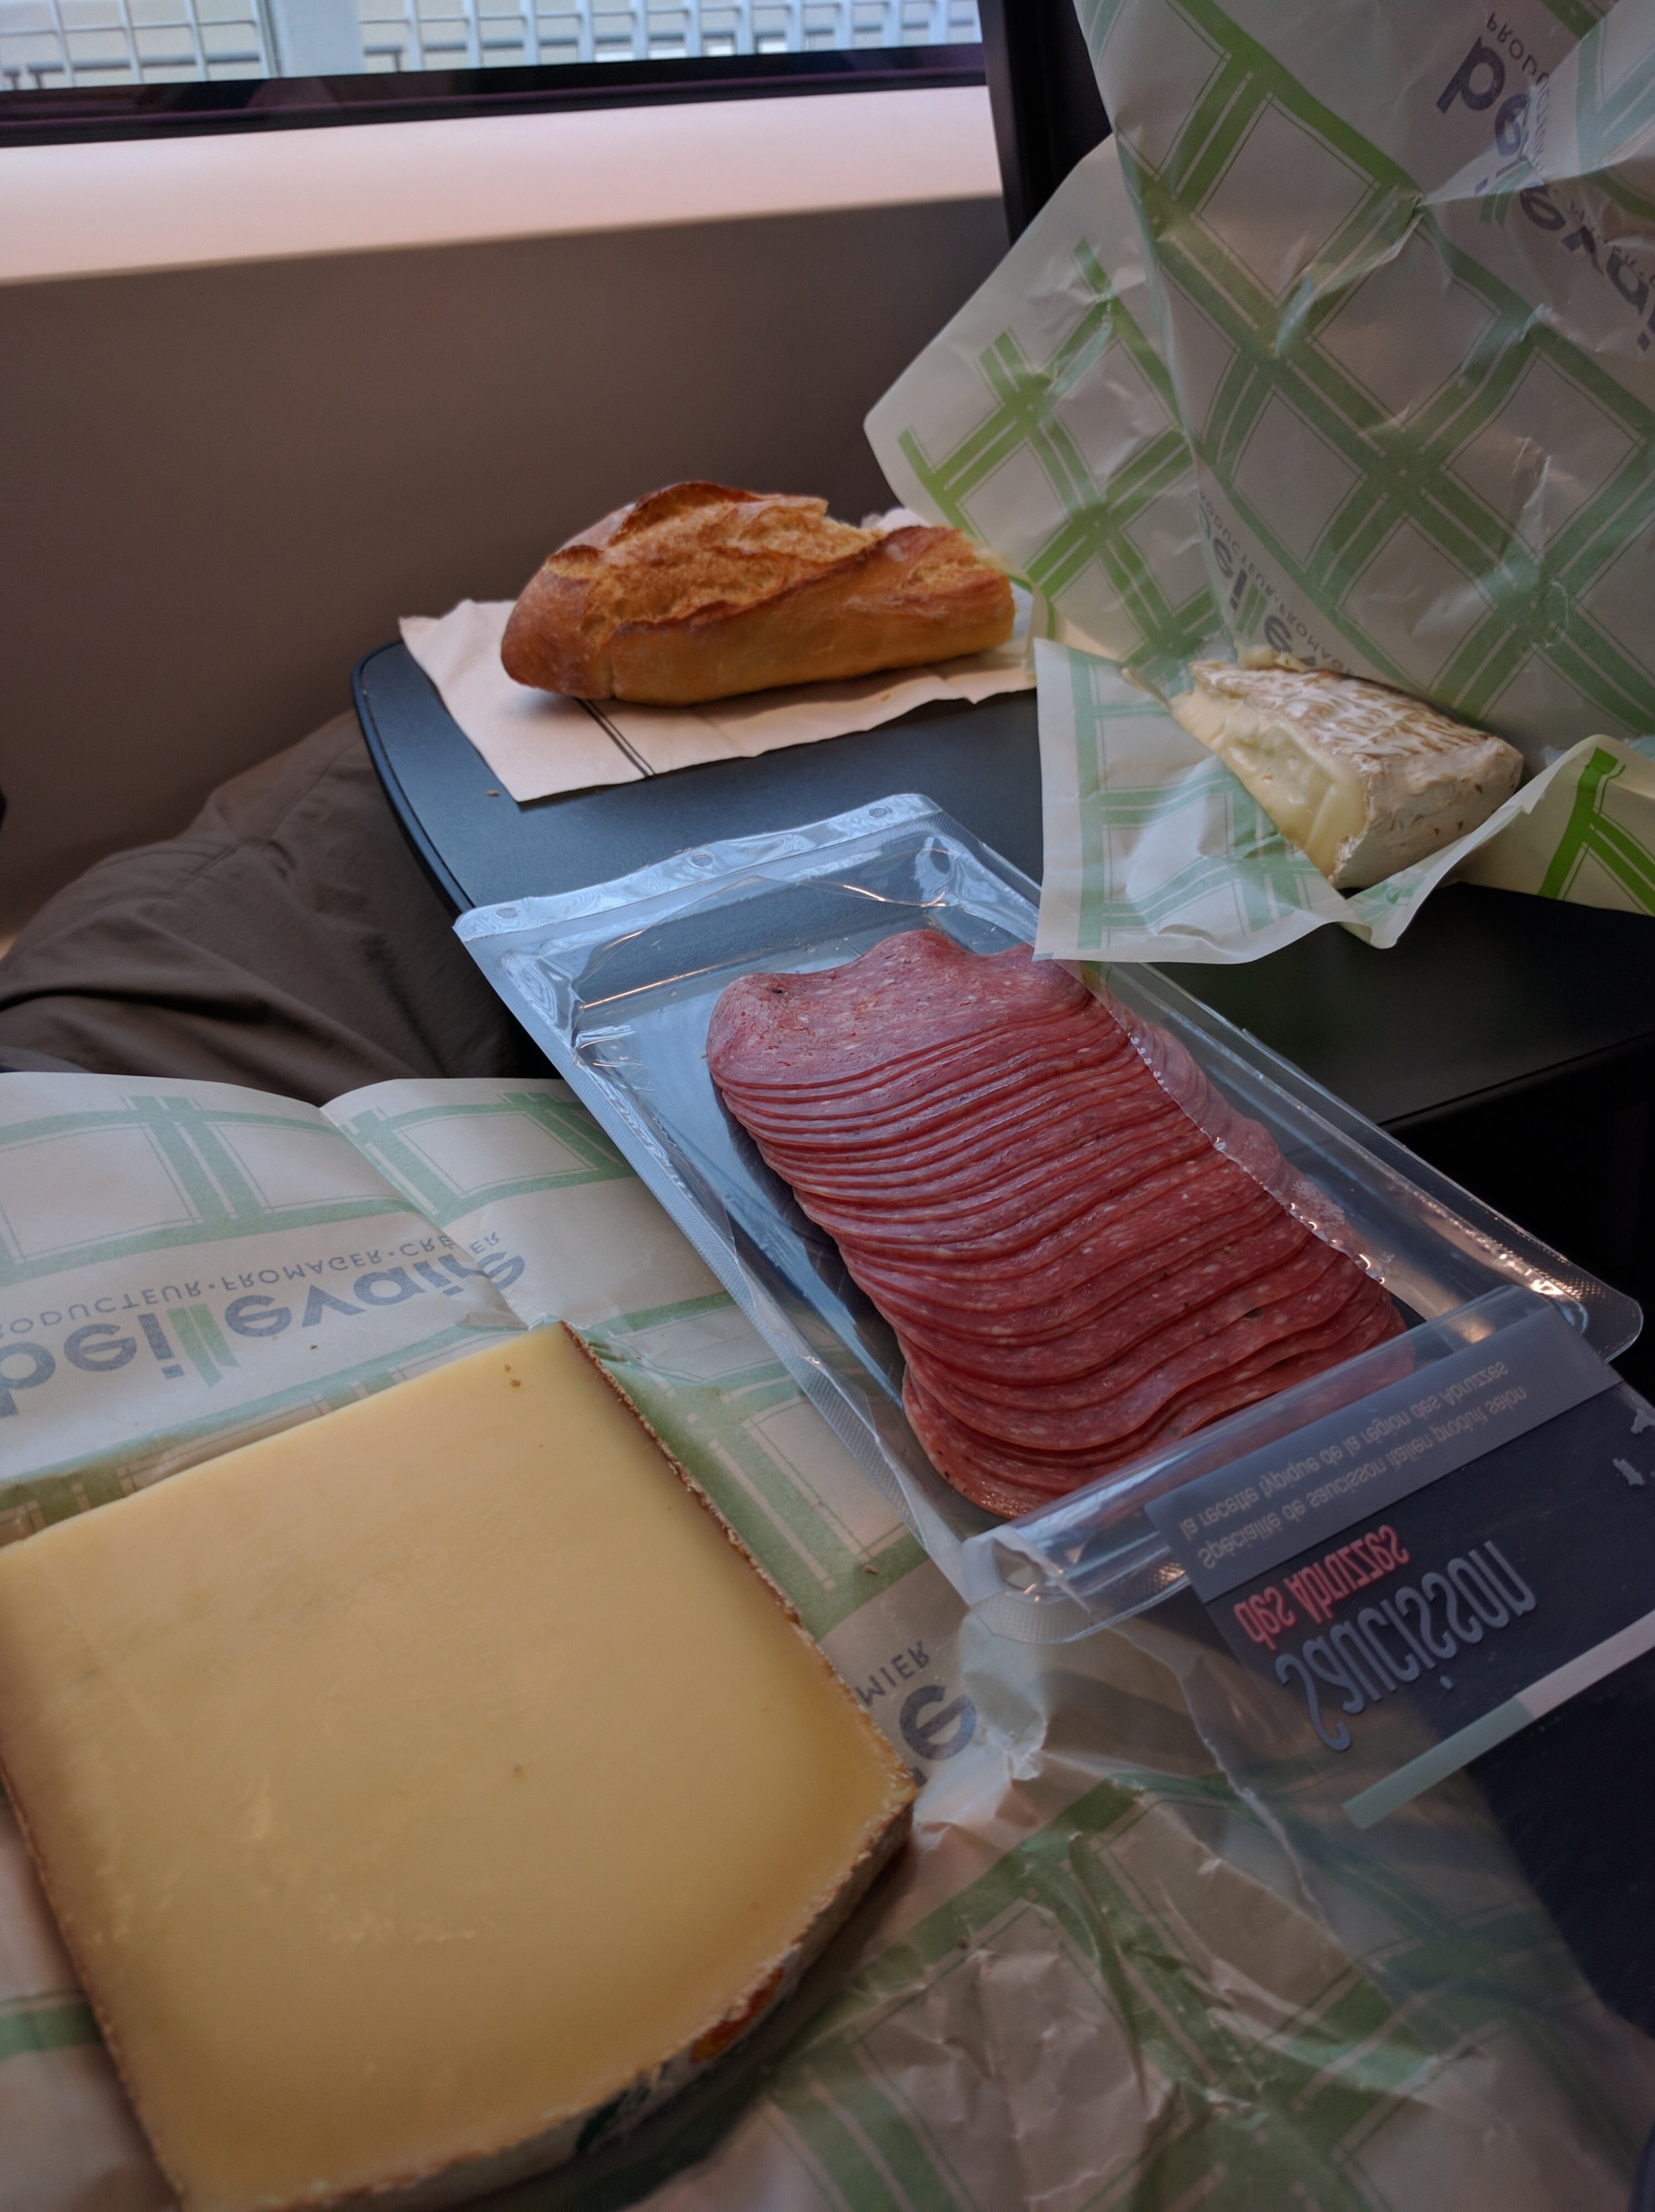 We took some of France with us on the train ride back to London. I had Jeff a little nervous because right before we were supposed to be at the train station we walked a few blocks in search of a Fromagerie (cheese shop). At the shop we bought some brie de melun and   comté to go with our French   baguette  and salami. Yum!